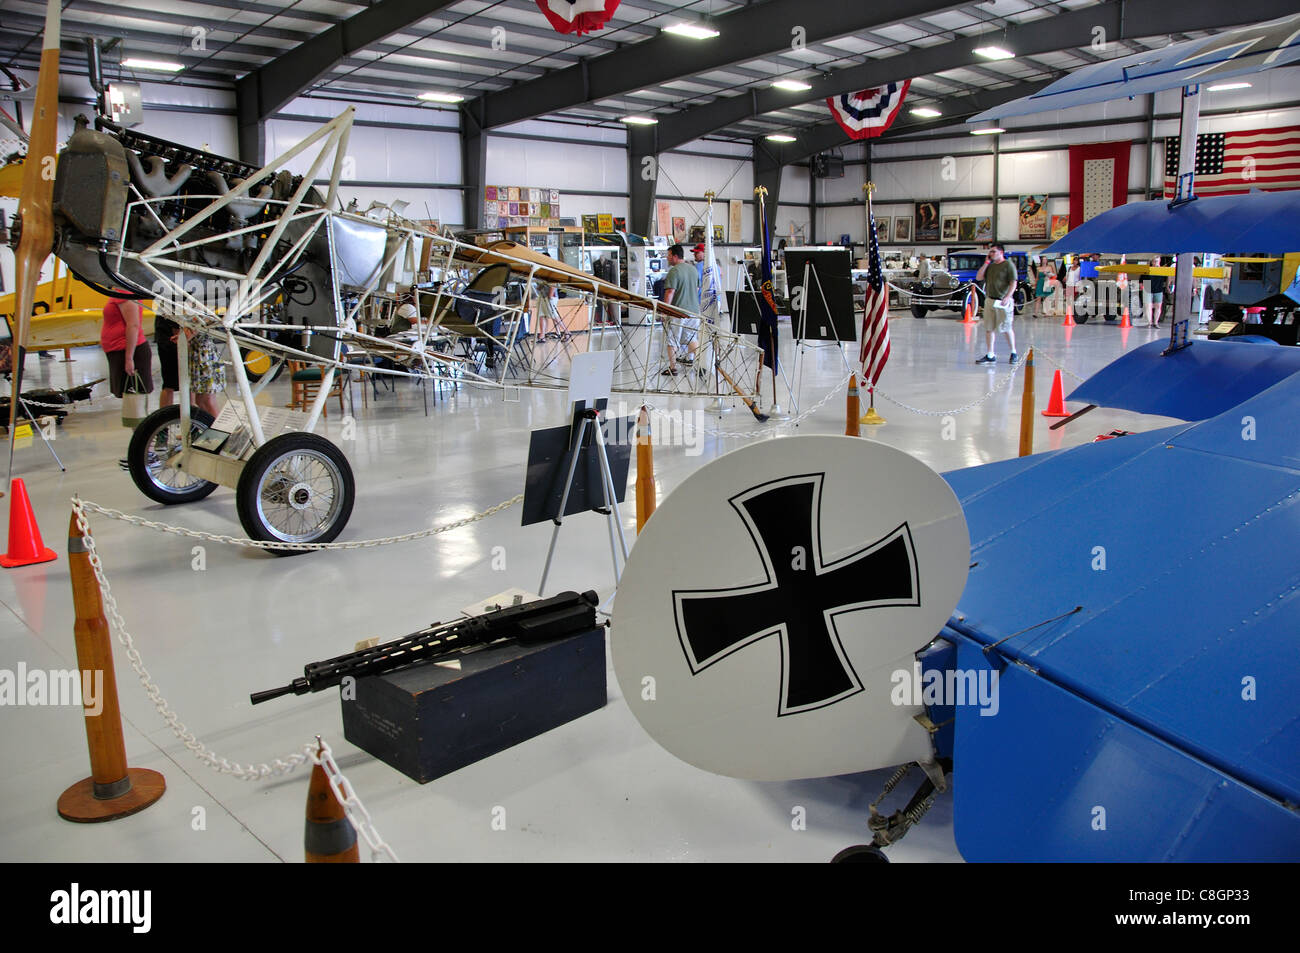 Warhawk Aviation Museum, Nampa Municipal Airport - Stock Image